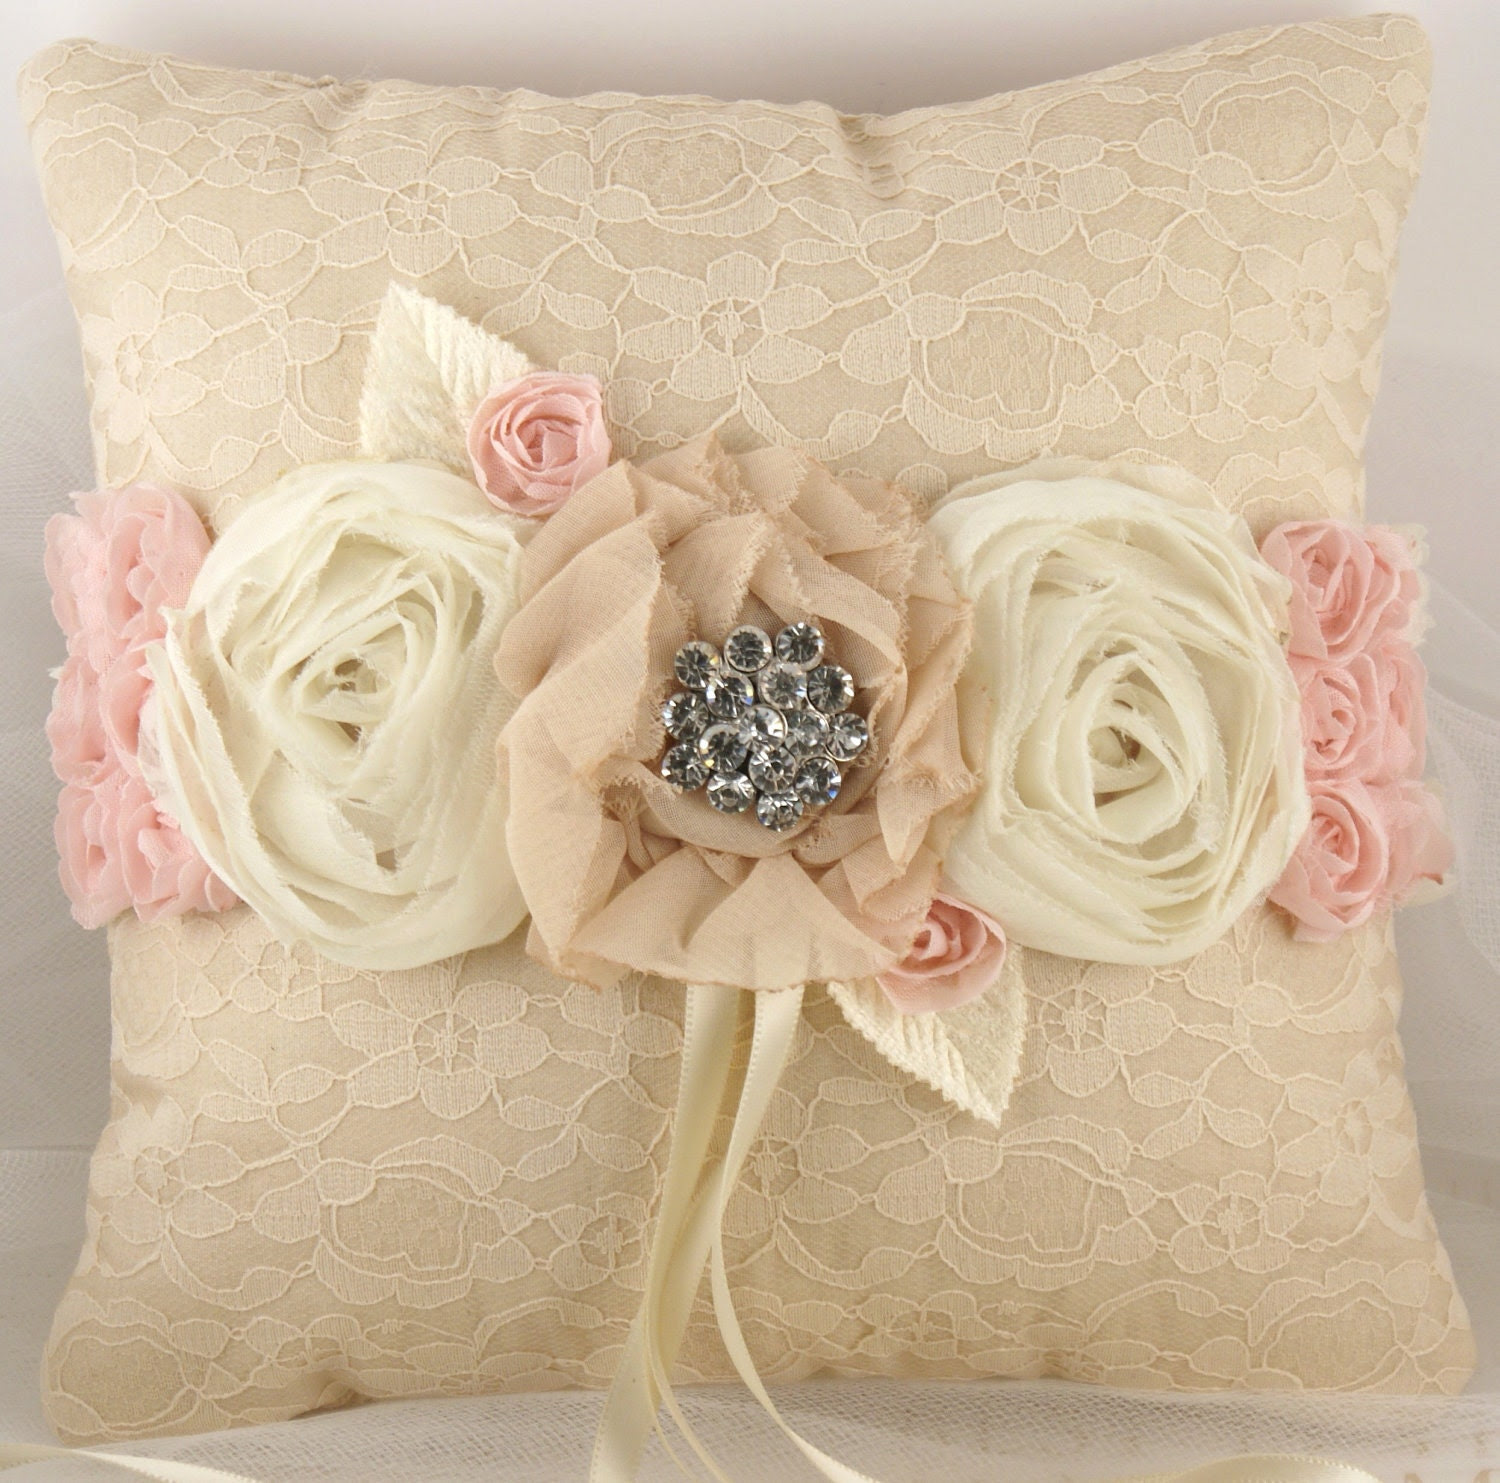 Bridal Ring Bearer Pillow in Cream and Blush Pink with Chiffon Flowers, Lace and Vintage Brooch- Vintage Bride